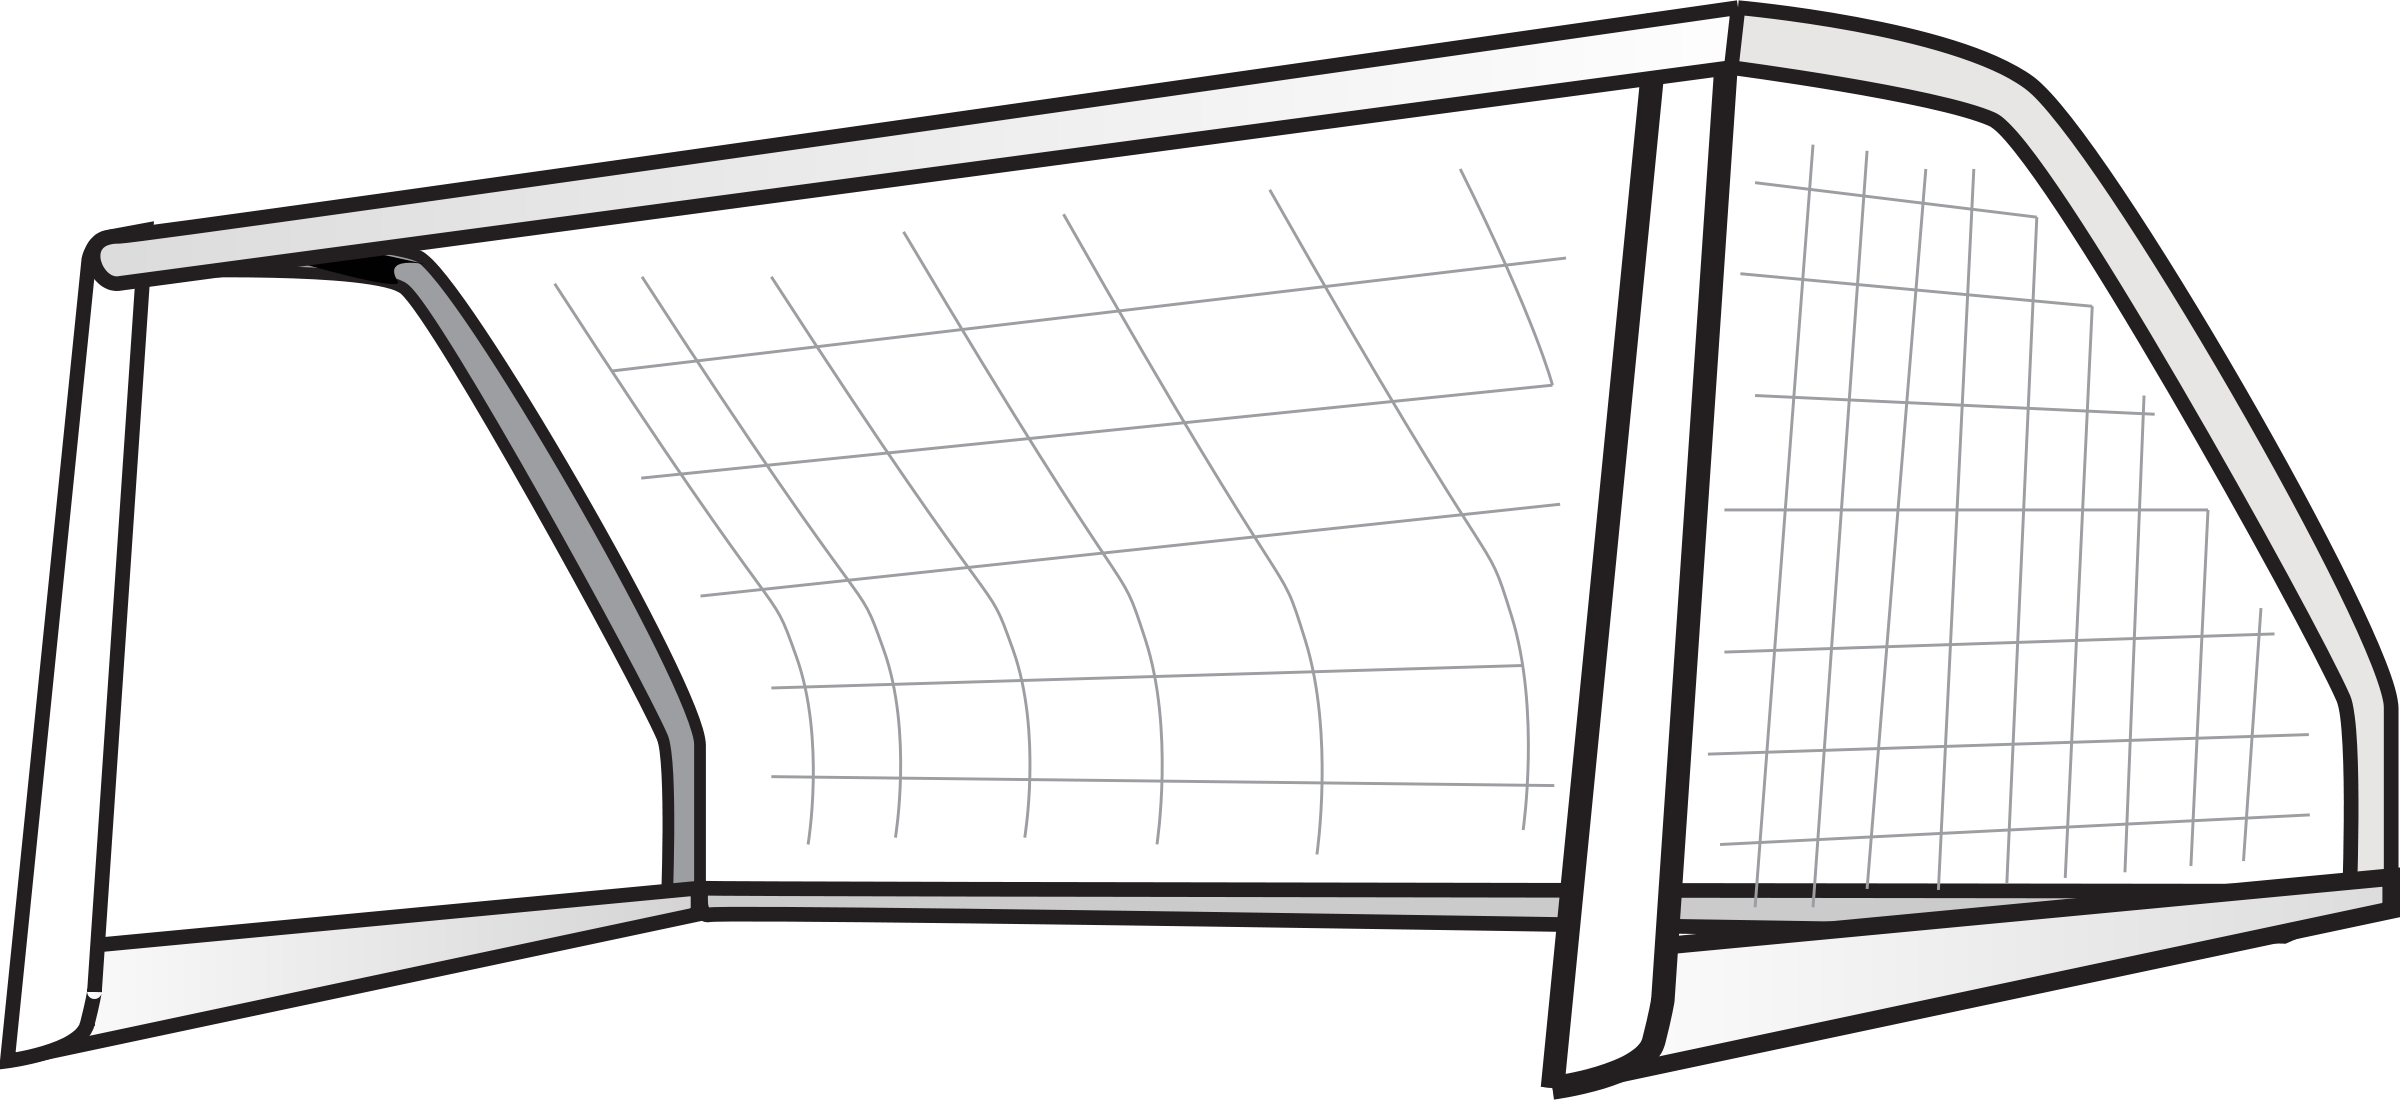 Clipart football goal post image library library Soccer Goal Clipart & Soccer Goal Clip Art Images - ClipartALL.com image library library